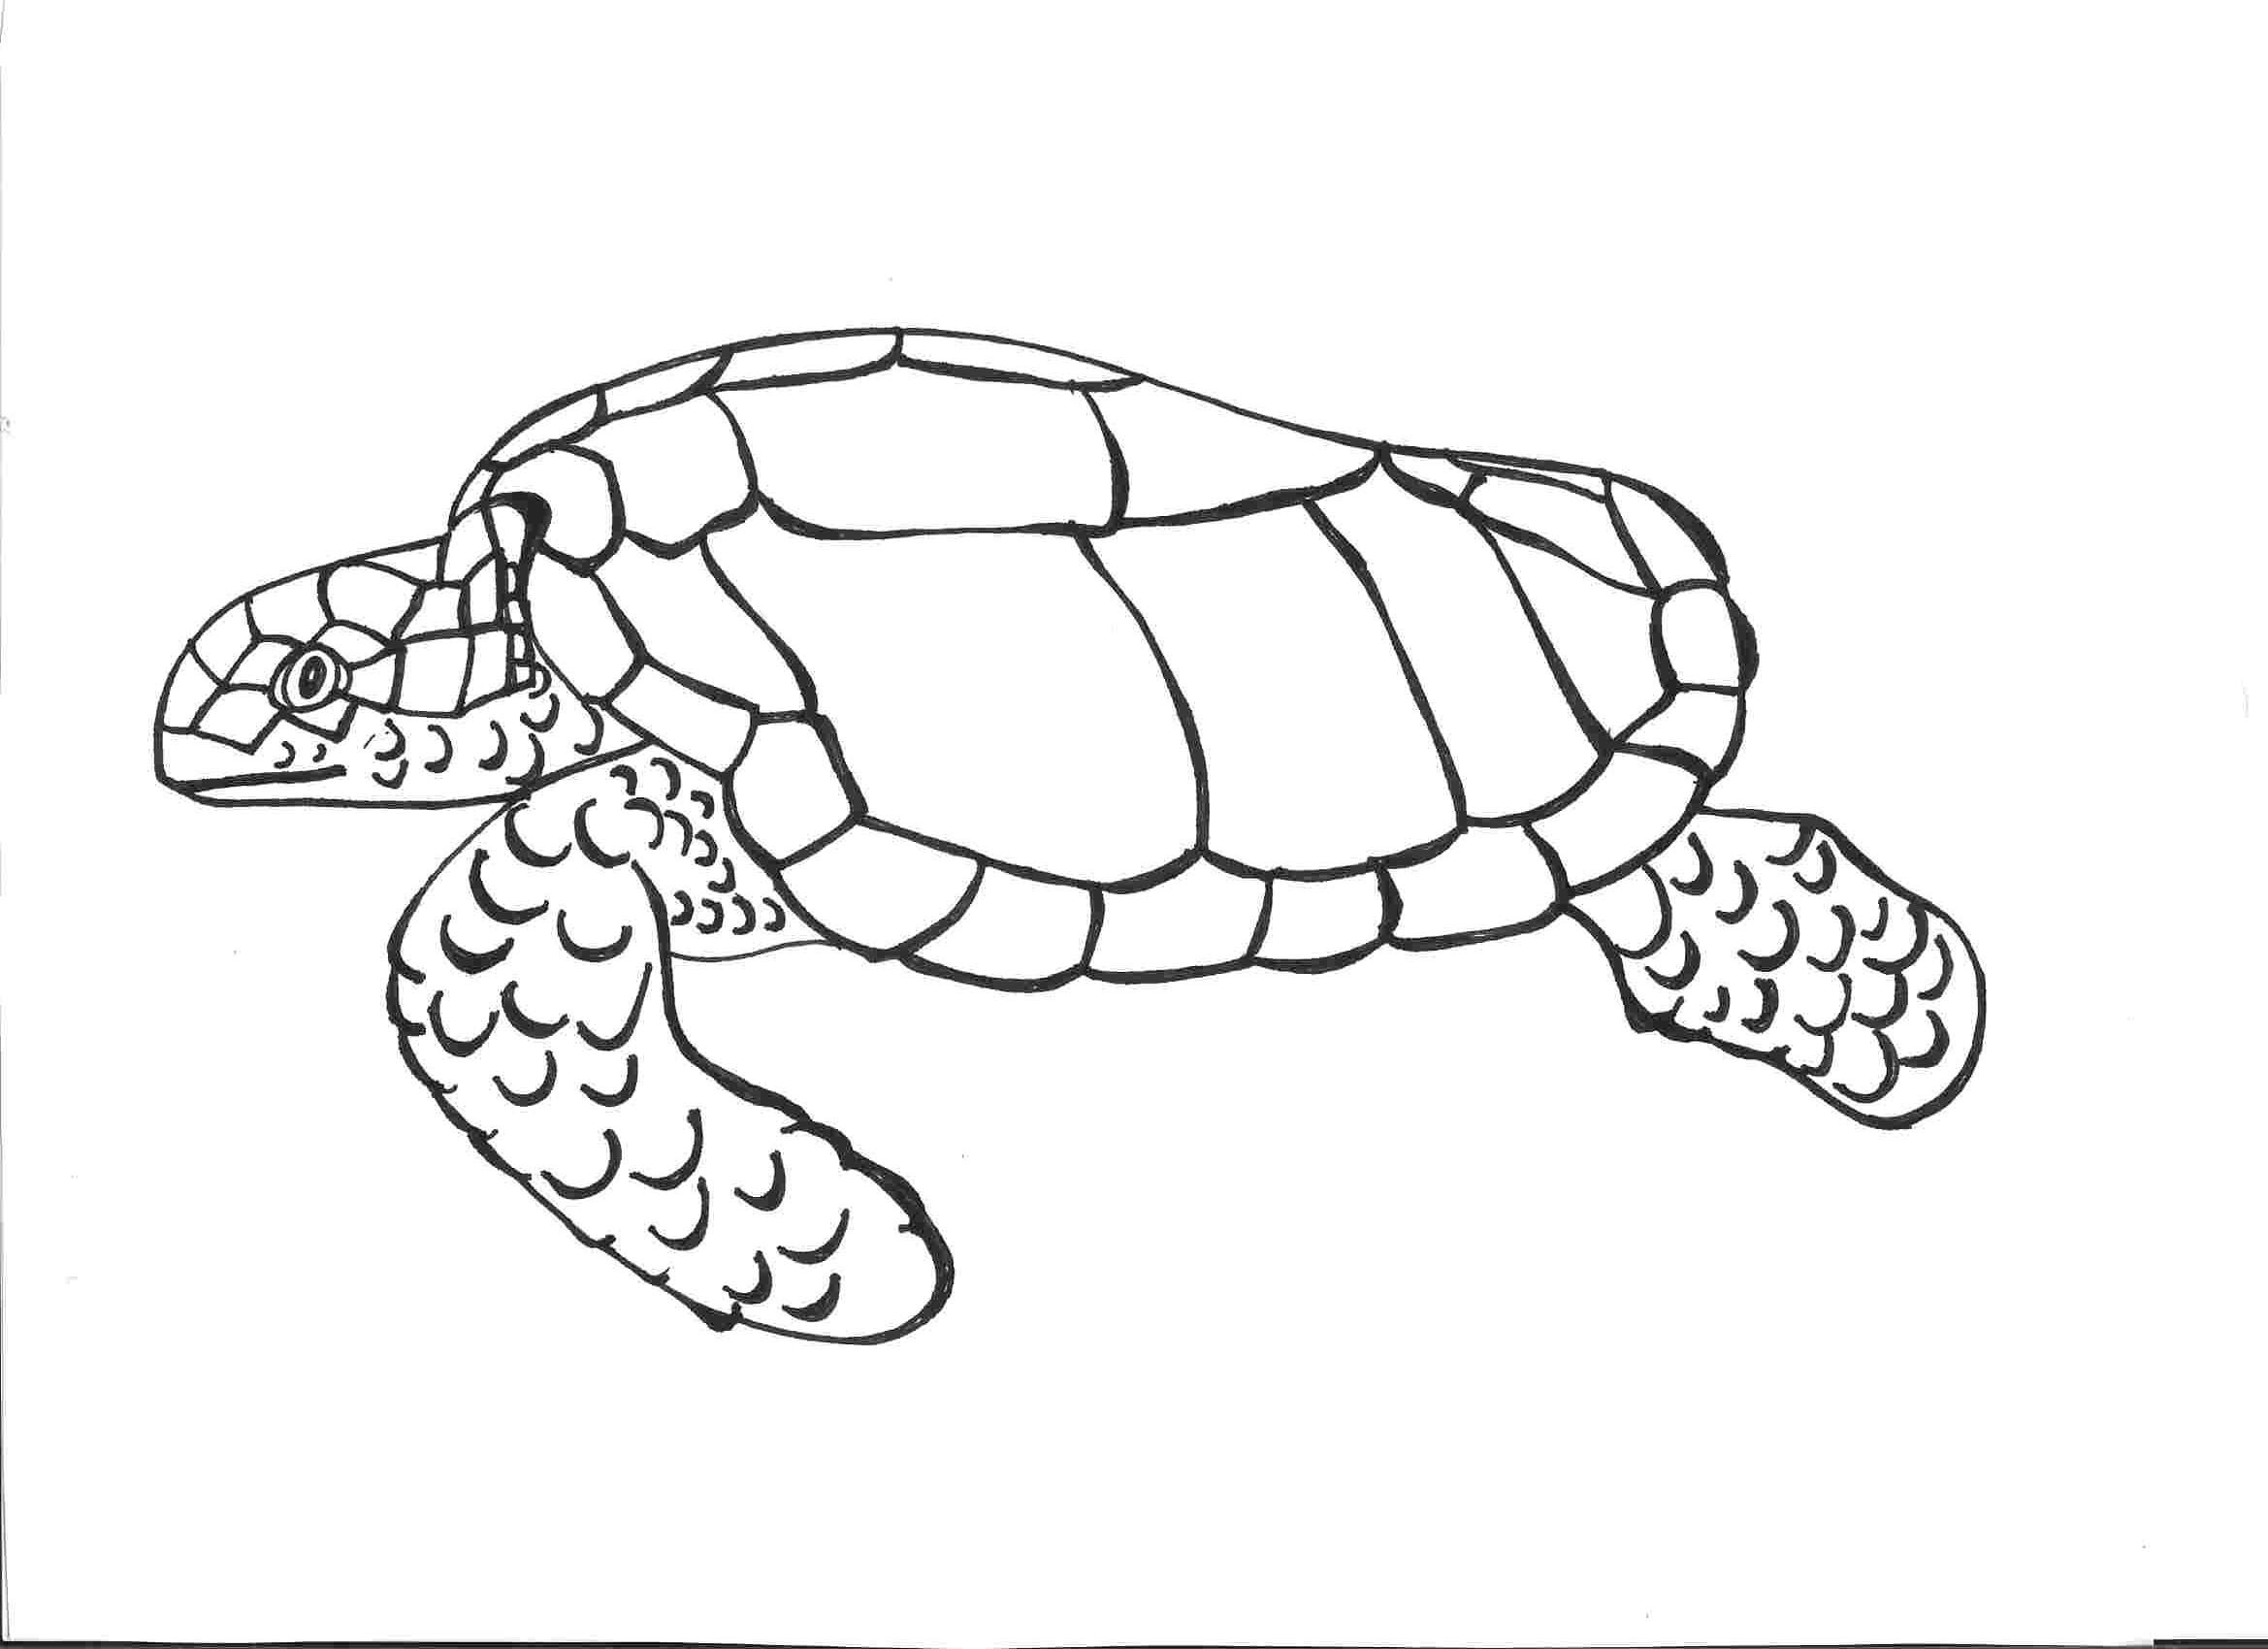 Simple Turtle Coloring Pages Ideas For Kids Turtle